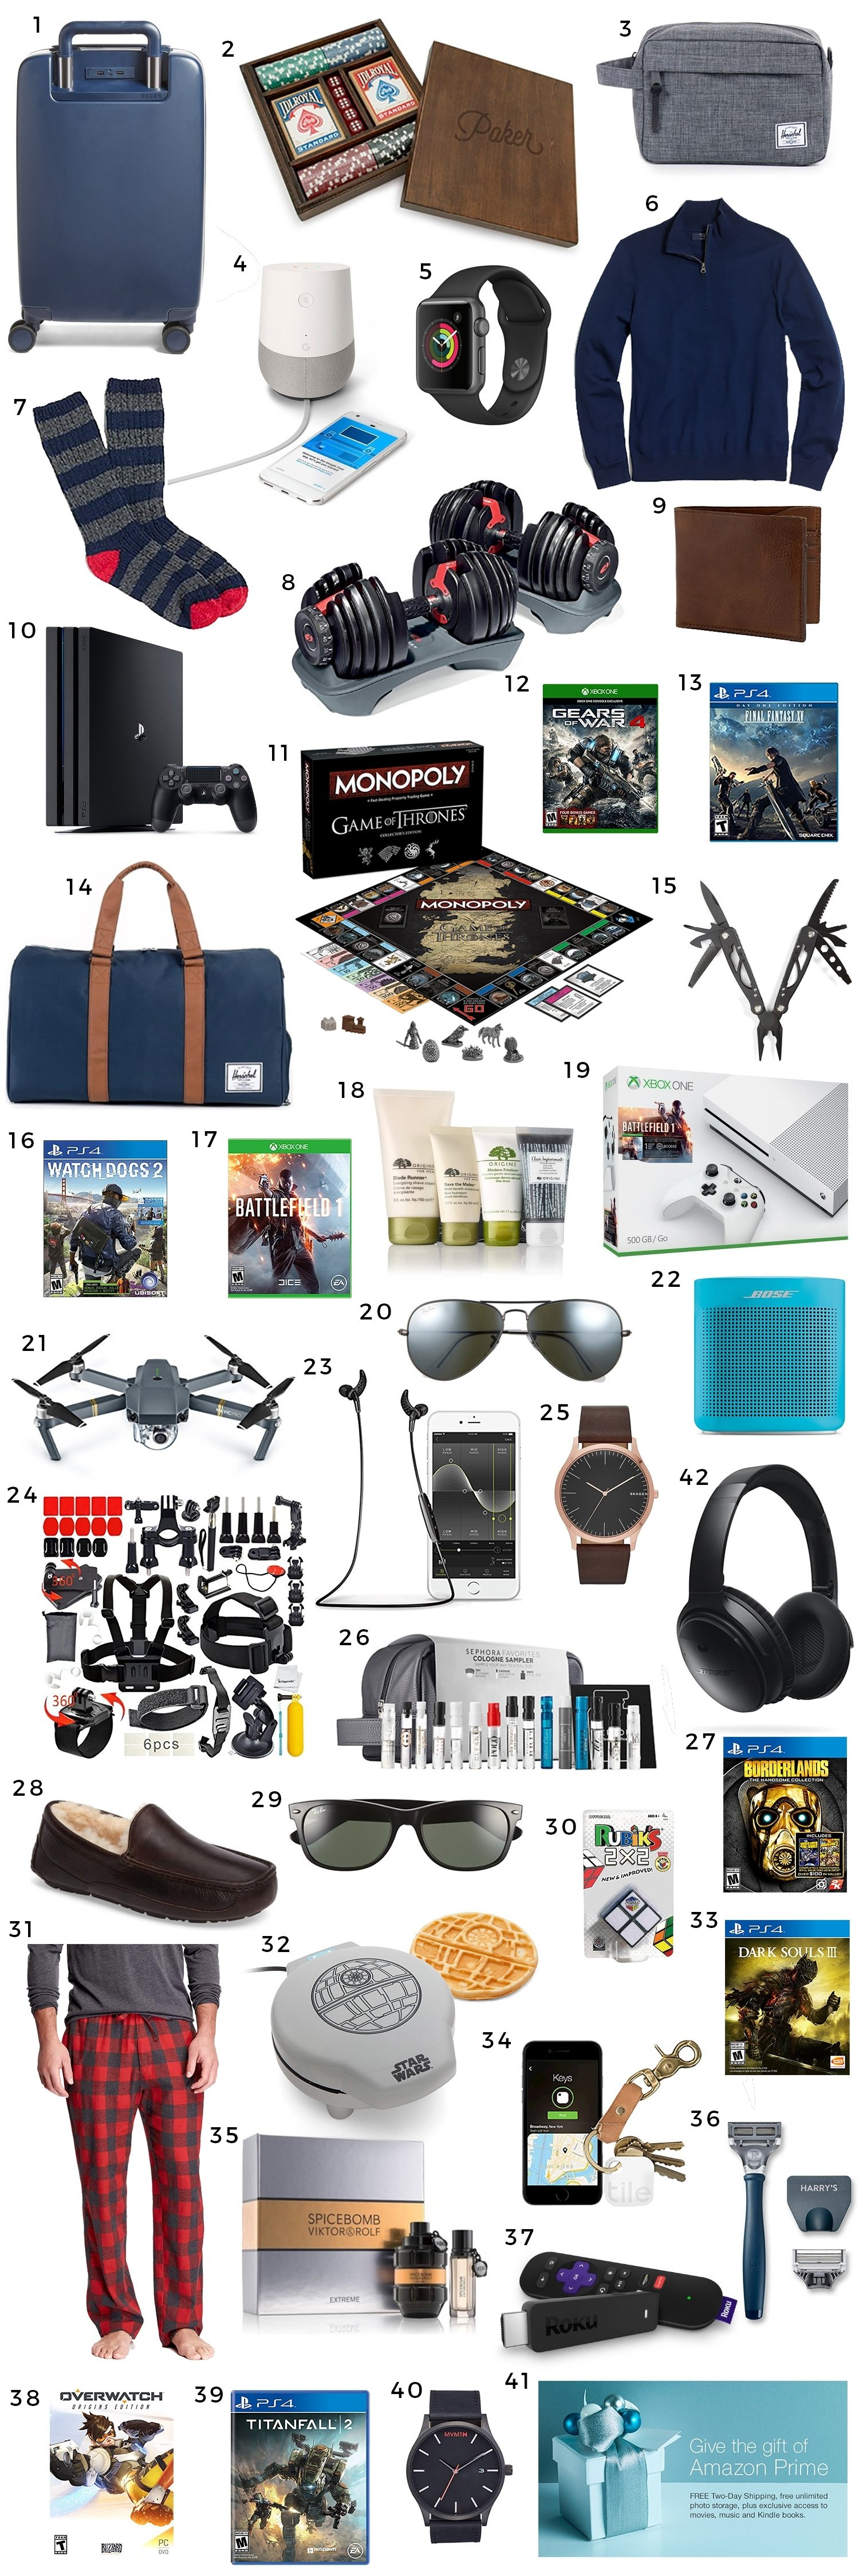 10 Gorgeous Great Christmas Gift Ideas For Men the best christmas gift ideas for men ashley brooke nicholas 2020